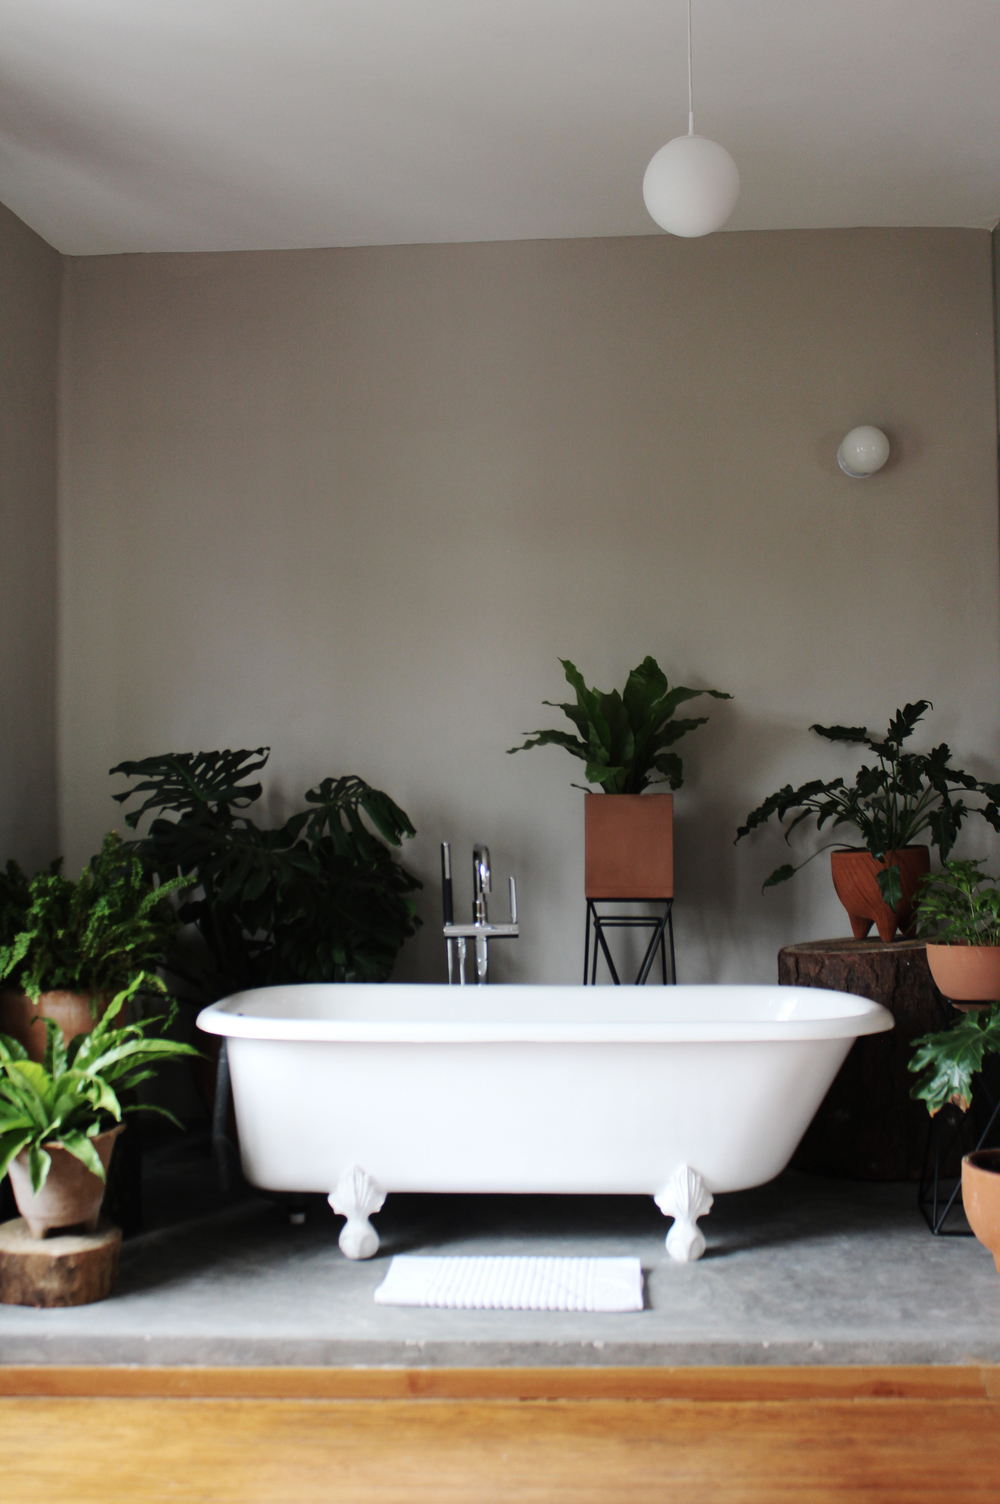 mexico city hotels chaya bnb wave provocateur bath tub